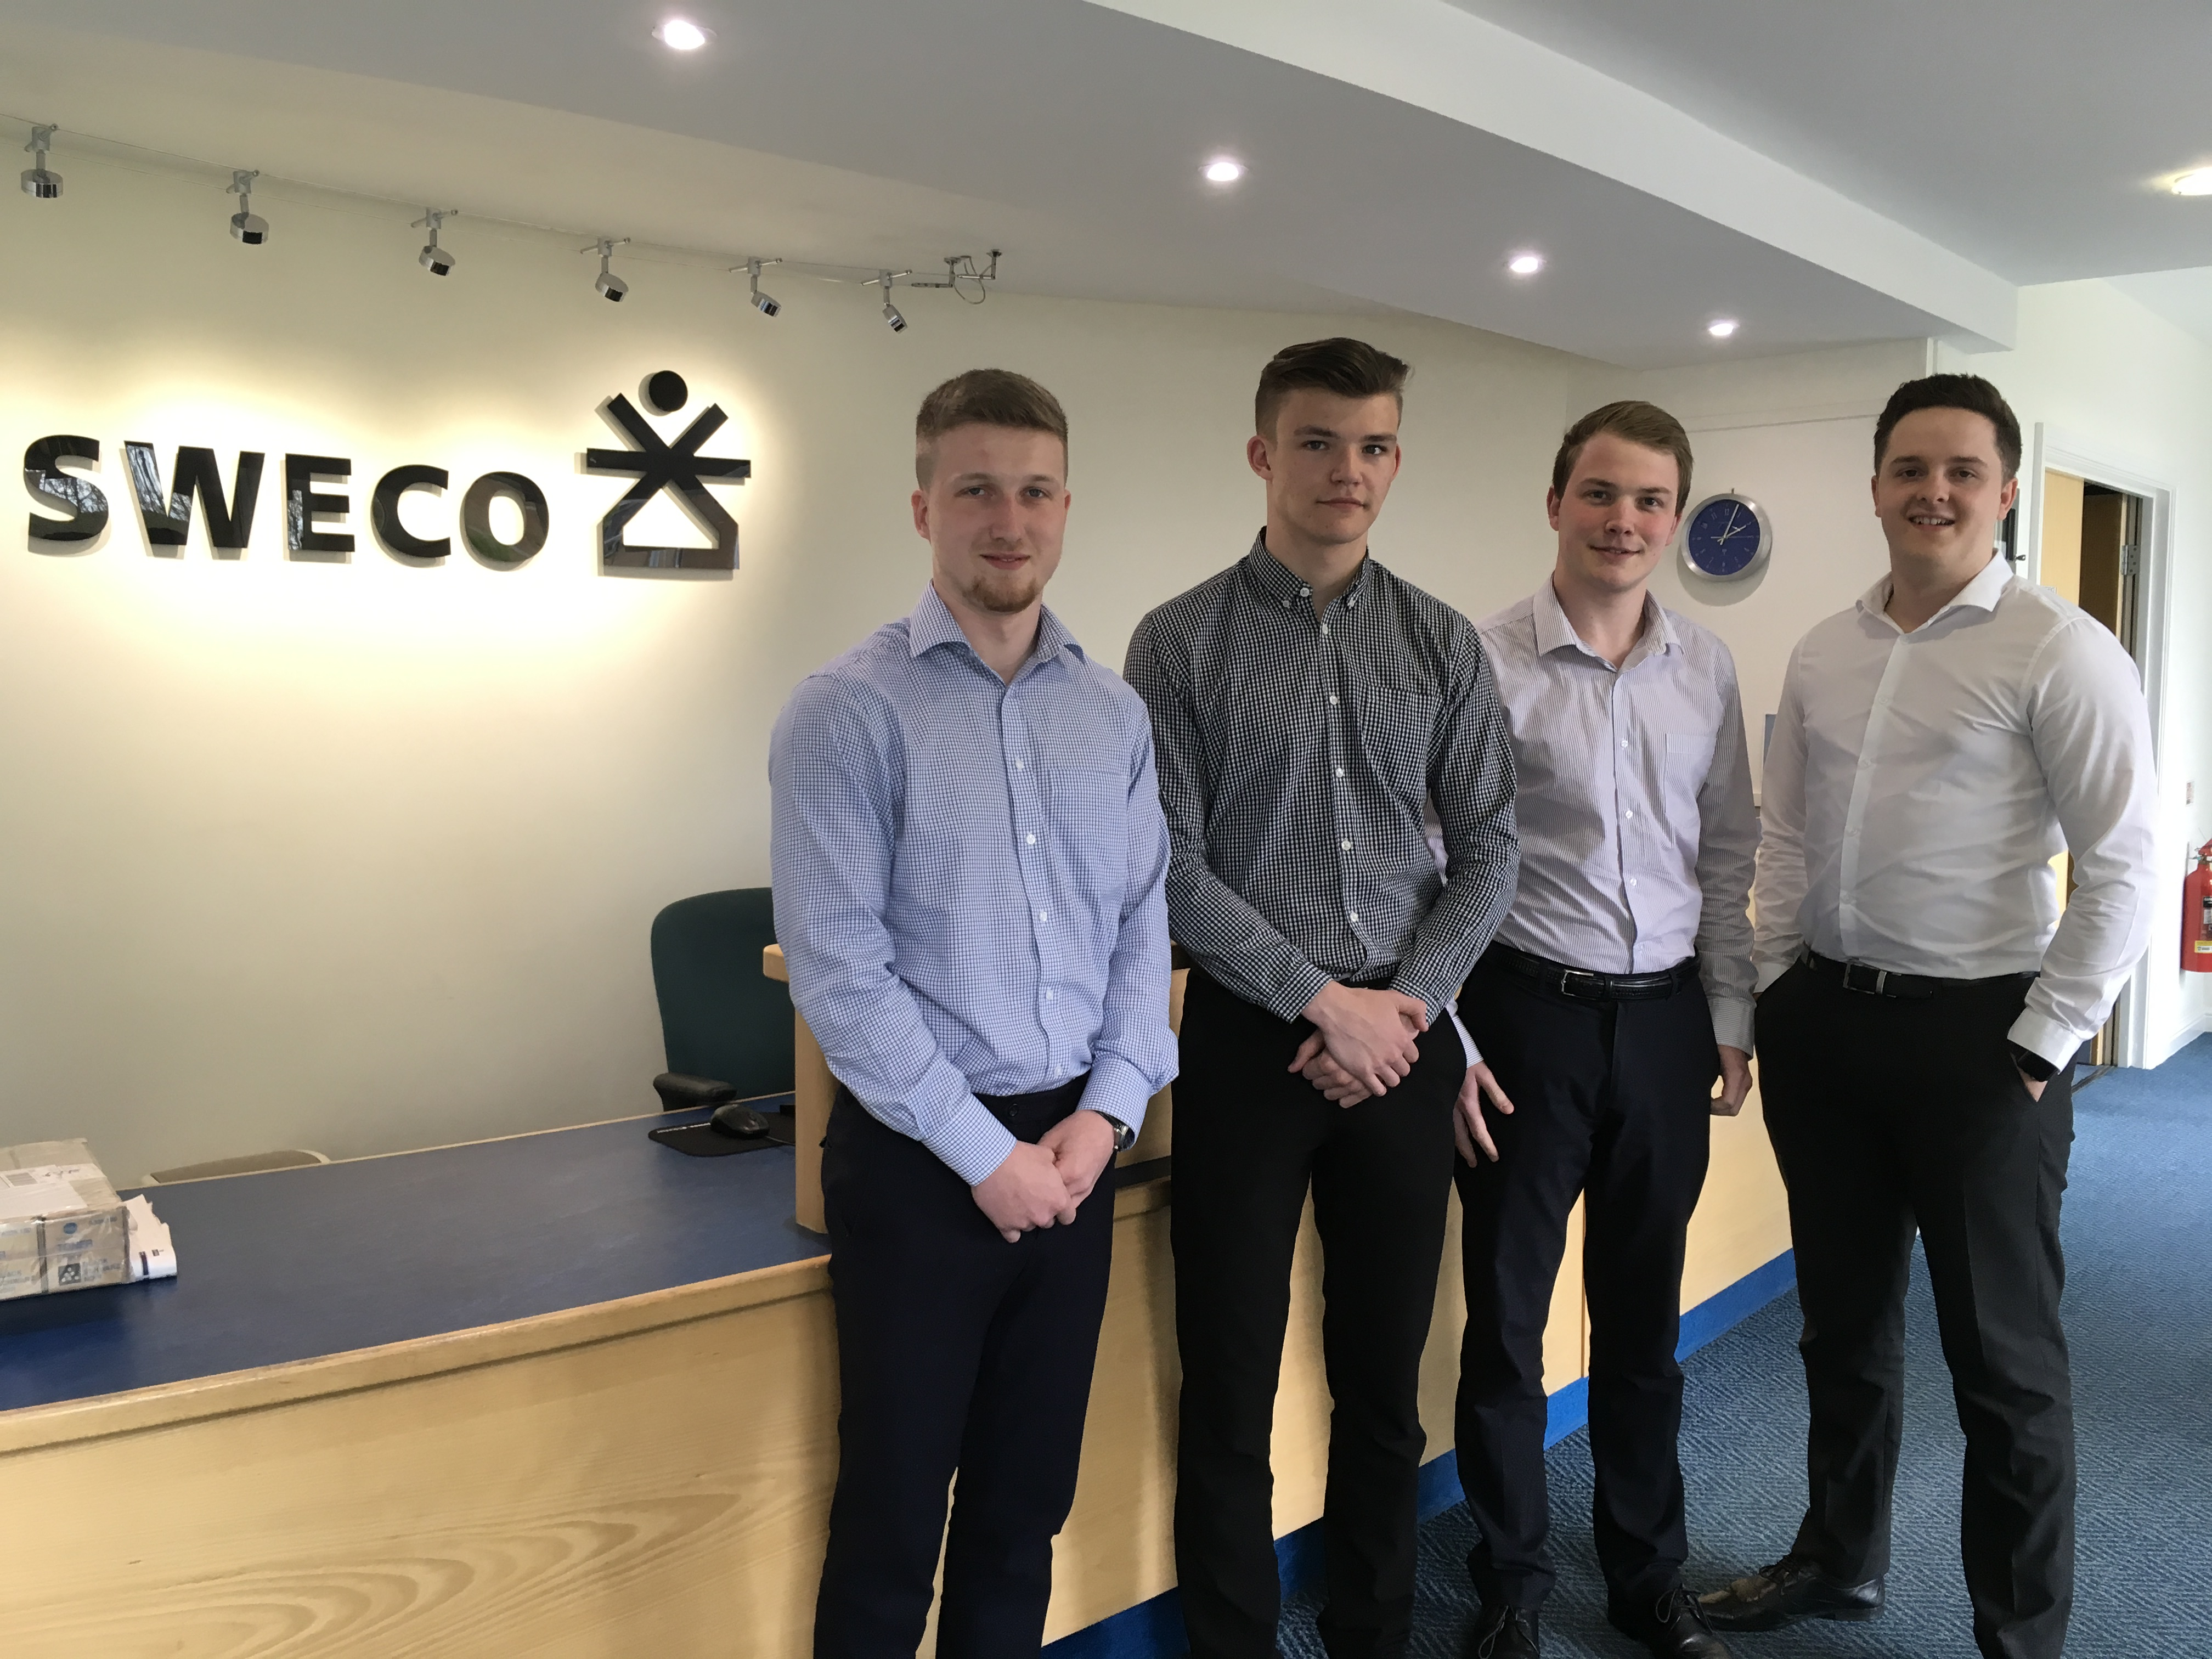 Sweco apprentices, Jack, Louis, Jordan and Connor